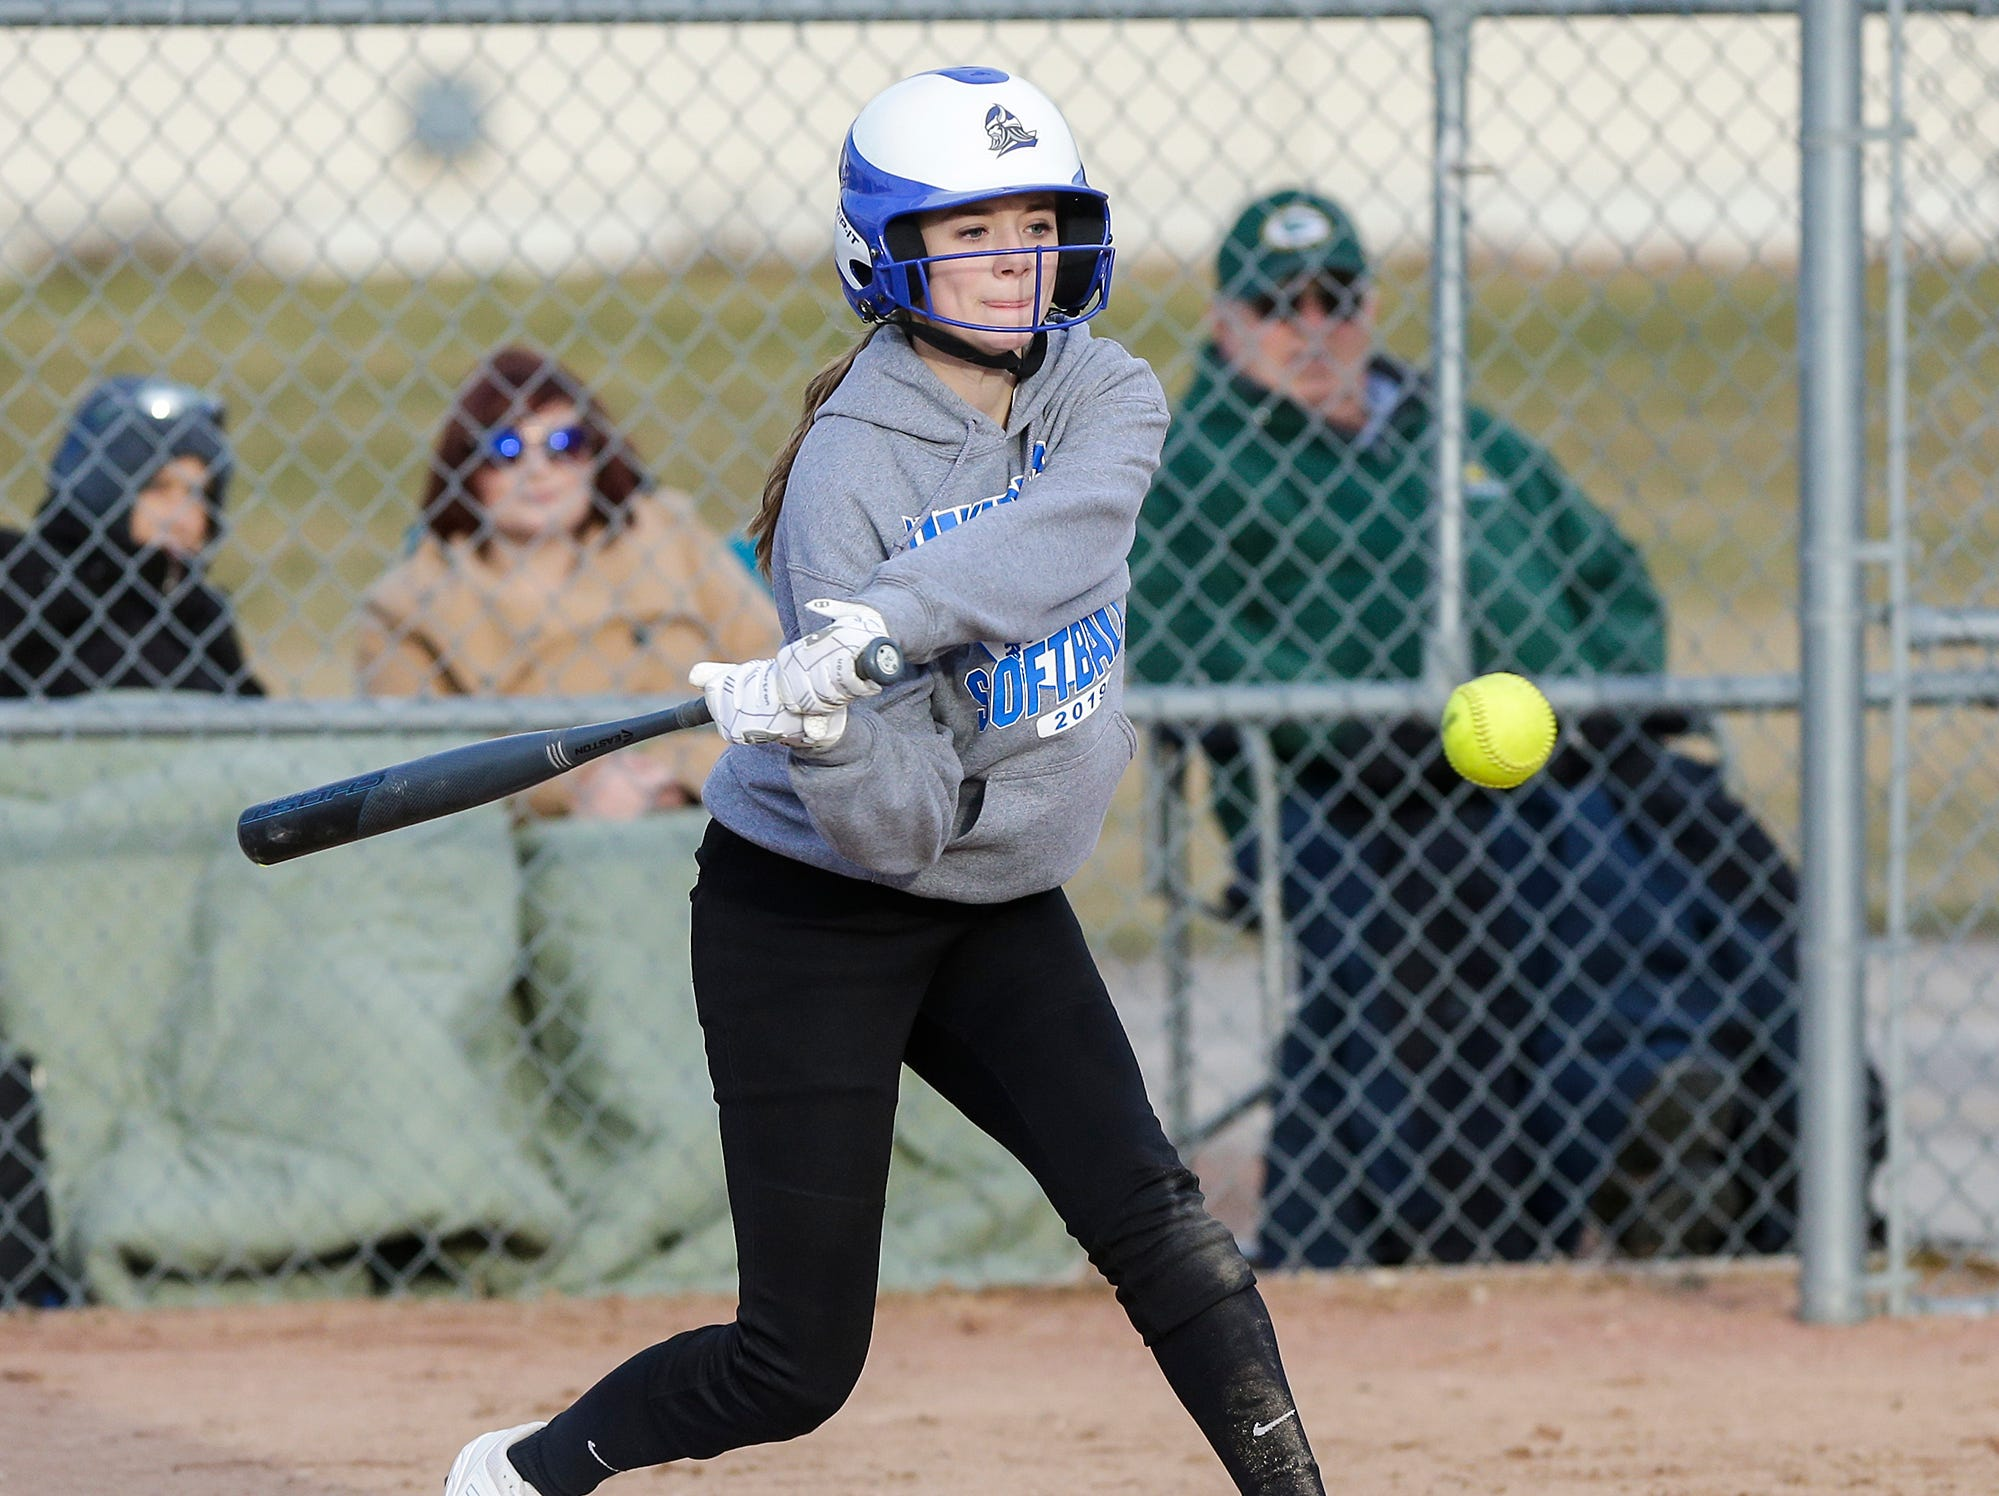 Winnebago Lutheran Academy softball's Rylee Loehr hits a single in the fourth inning against Laconia High School April 9, 2019 during their game in Fond du Lac, Wis. Laconia won the game 25-9. Doug Raflik/USA TODAY NETWORK-Wisconsin